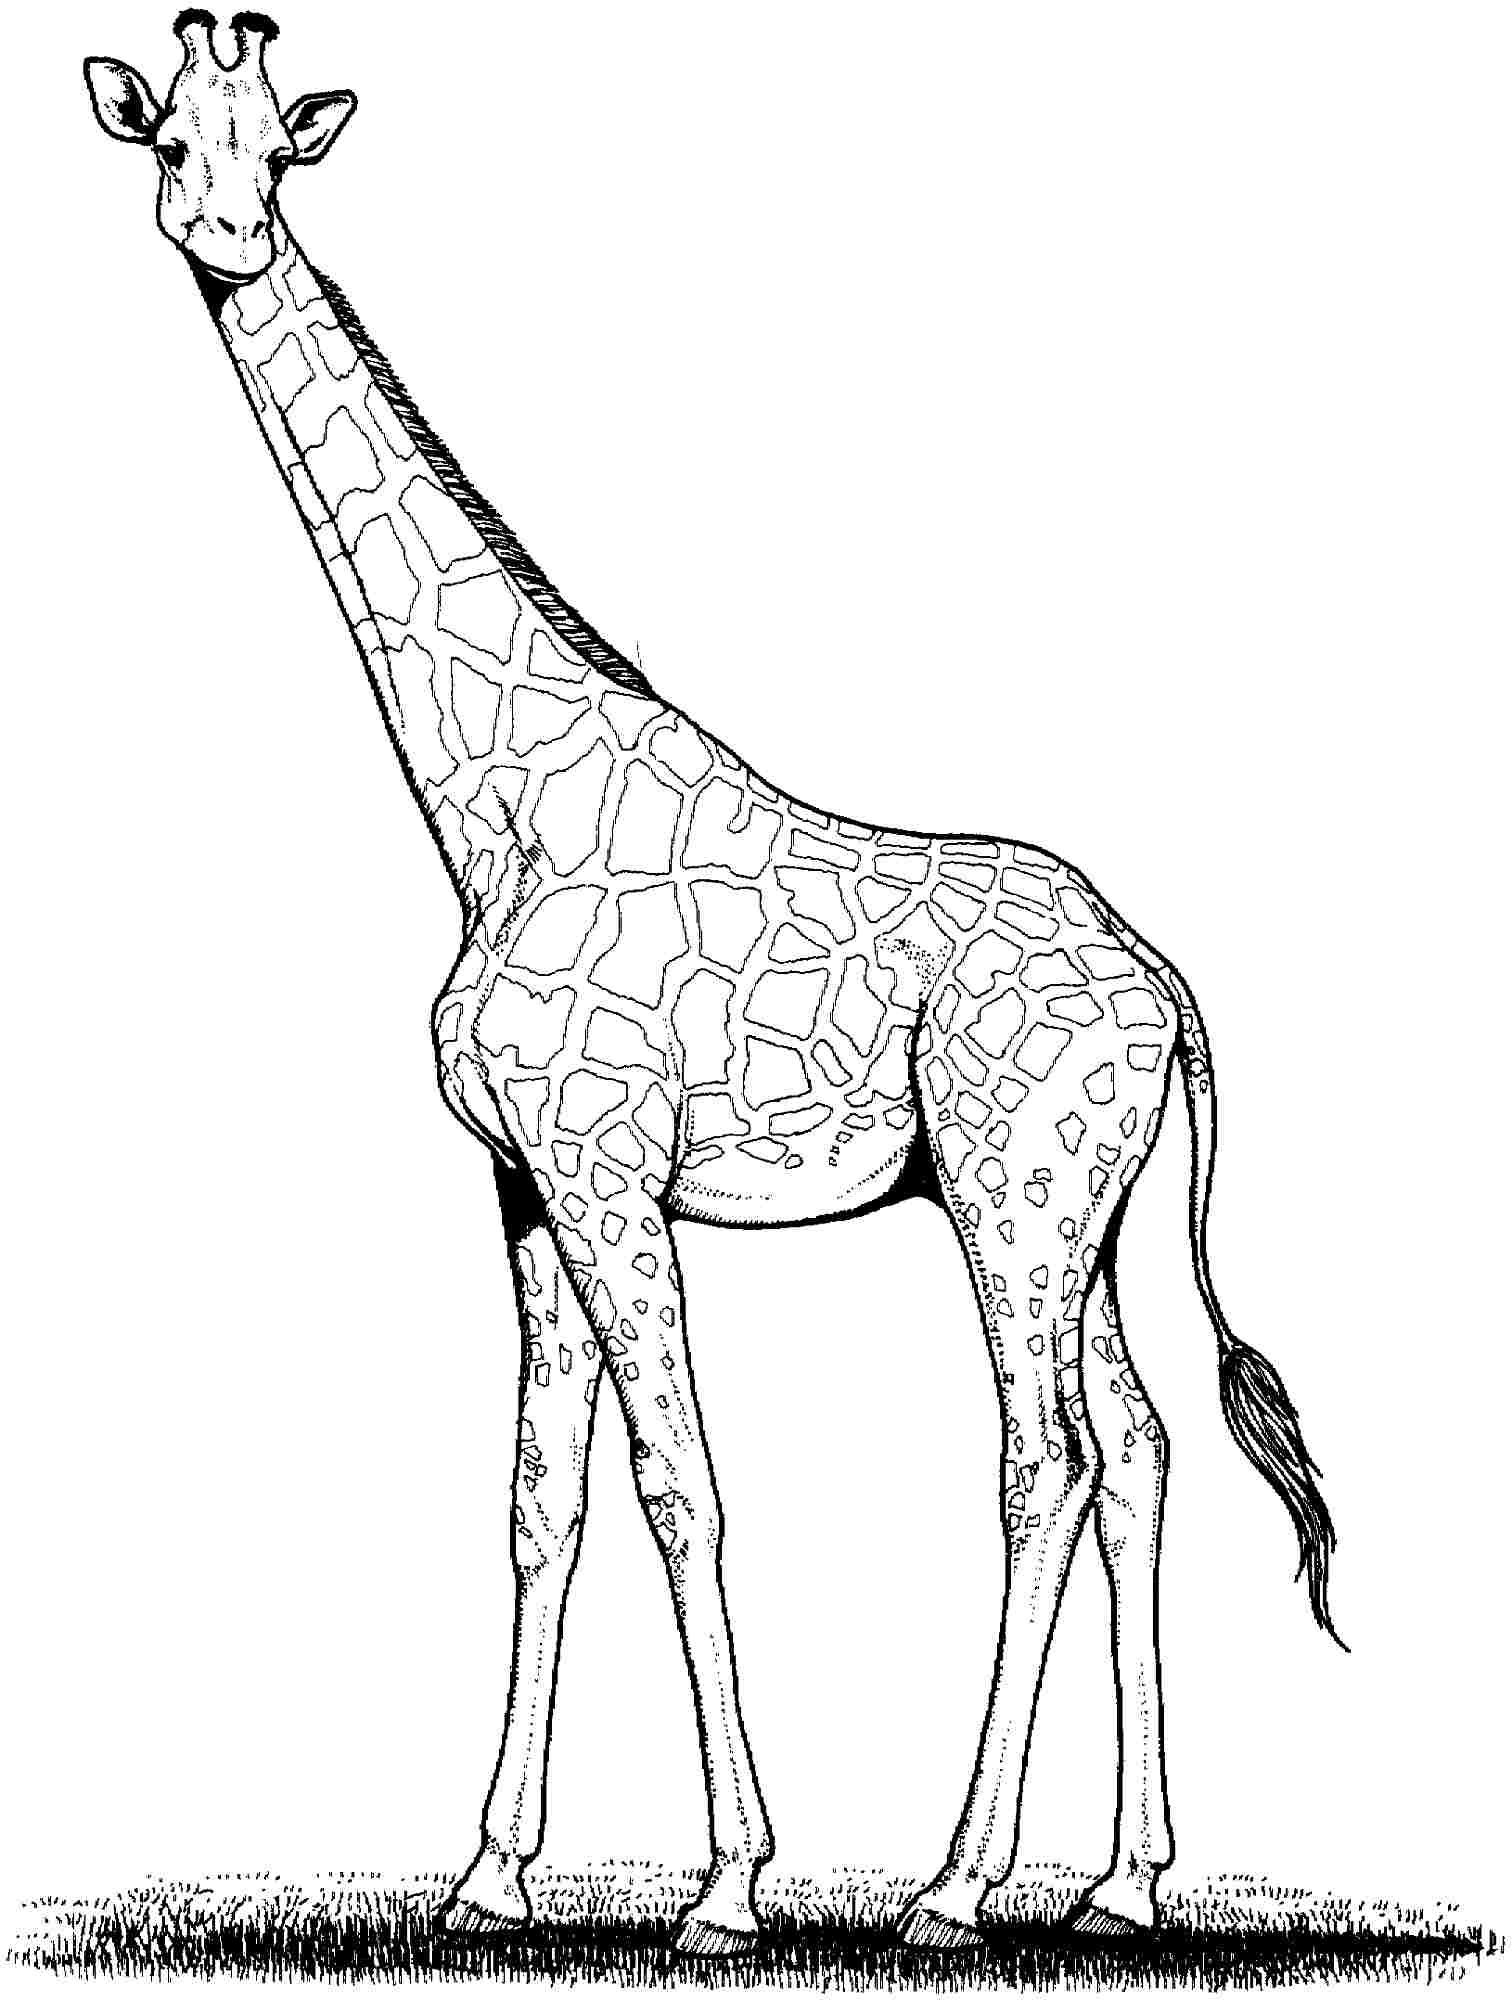 Clip Art Cartoon Giraffe Coloring Pages 1000 images about childrens art on pinterest